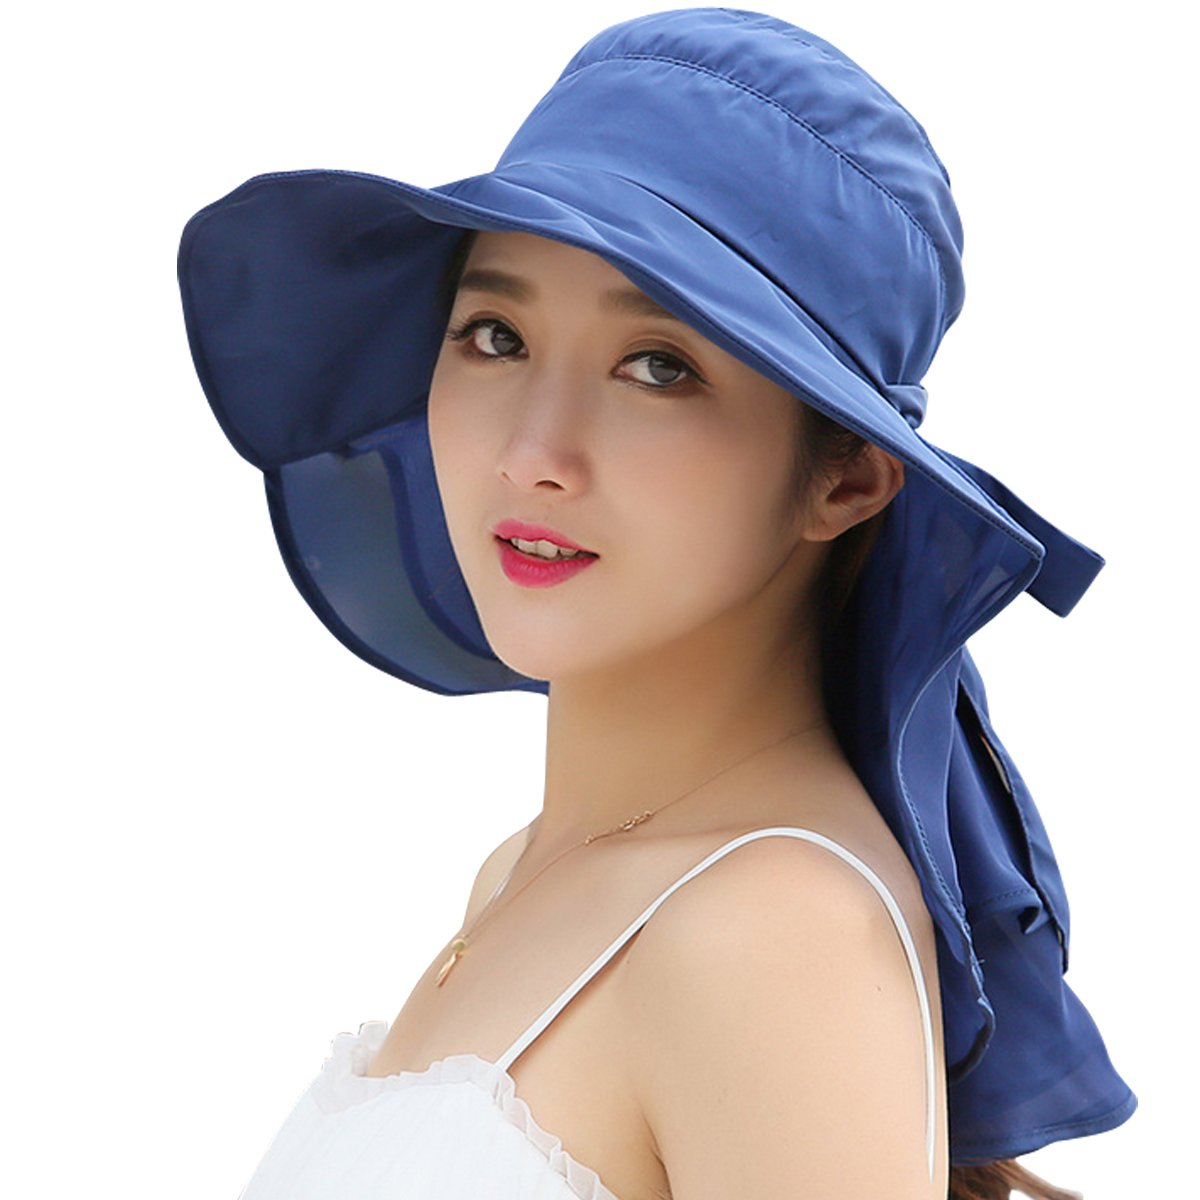 d661f49e Online Cheap wholesale Lanzom Women Large Brim Adjustable Quick-Drying  Outdoor Sun Hat with Net Protection Sun Hats Suppliers